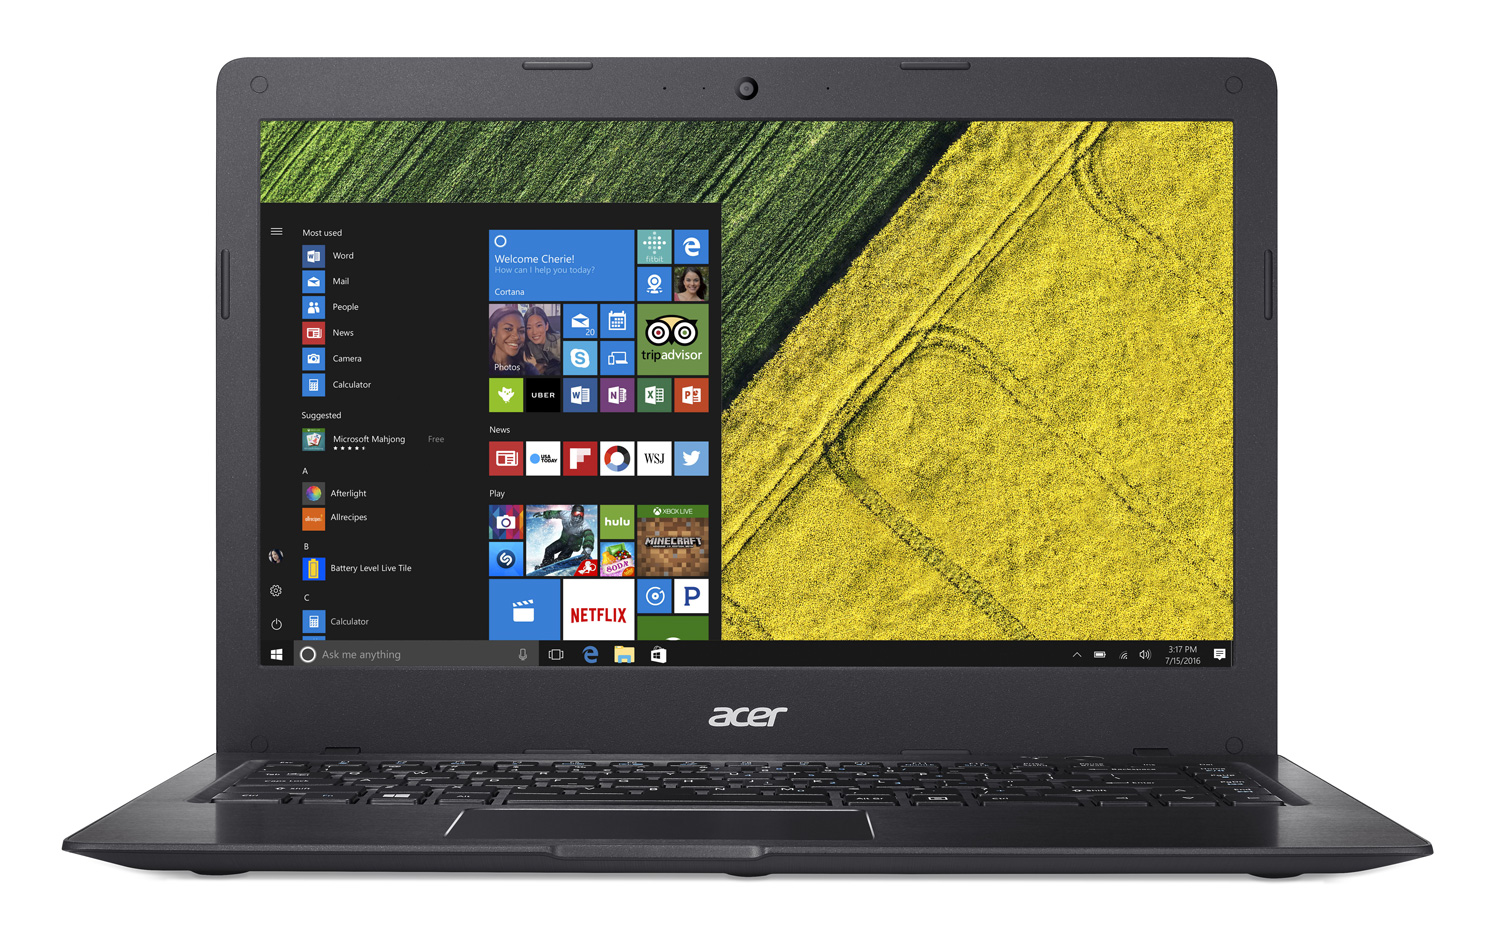 Ordinateur Portable Acer Swift 1, Quad Core N3700, SSD 128Go, 4Go DDR3, 14 pouces LED ,informatique Reunion 974, Futur Réunion informatique